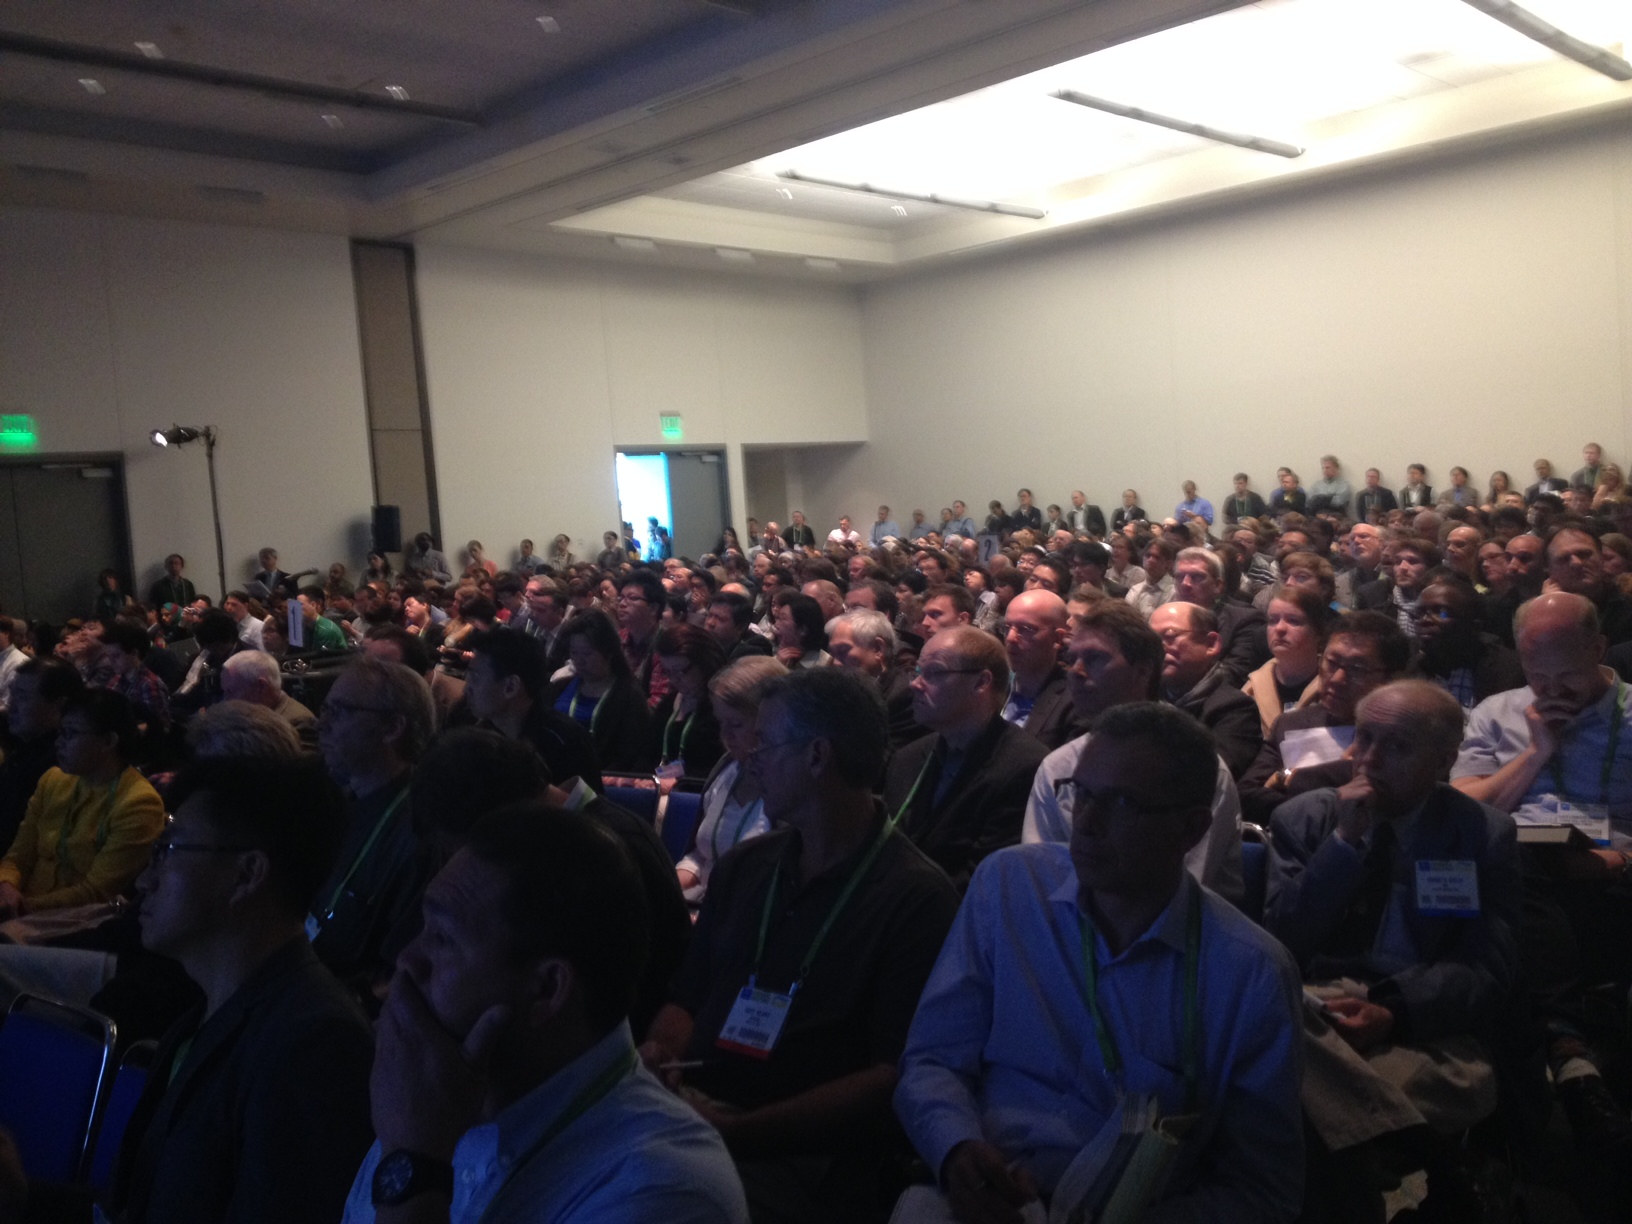 """Standing-room only crowd at the 2014 AACR Symposium """"Single Cell Analysis of the Tumor"""""""